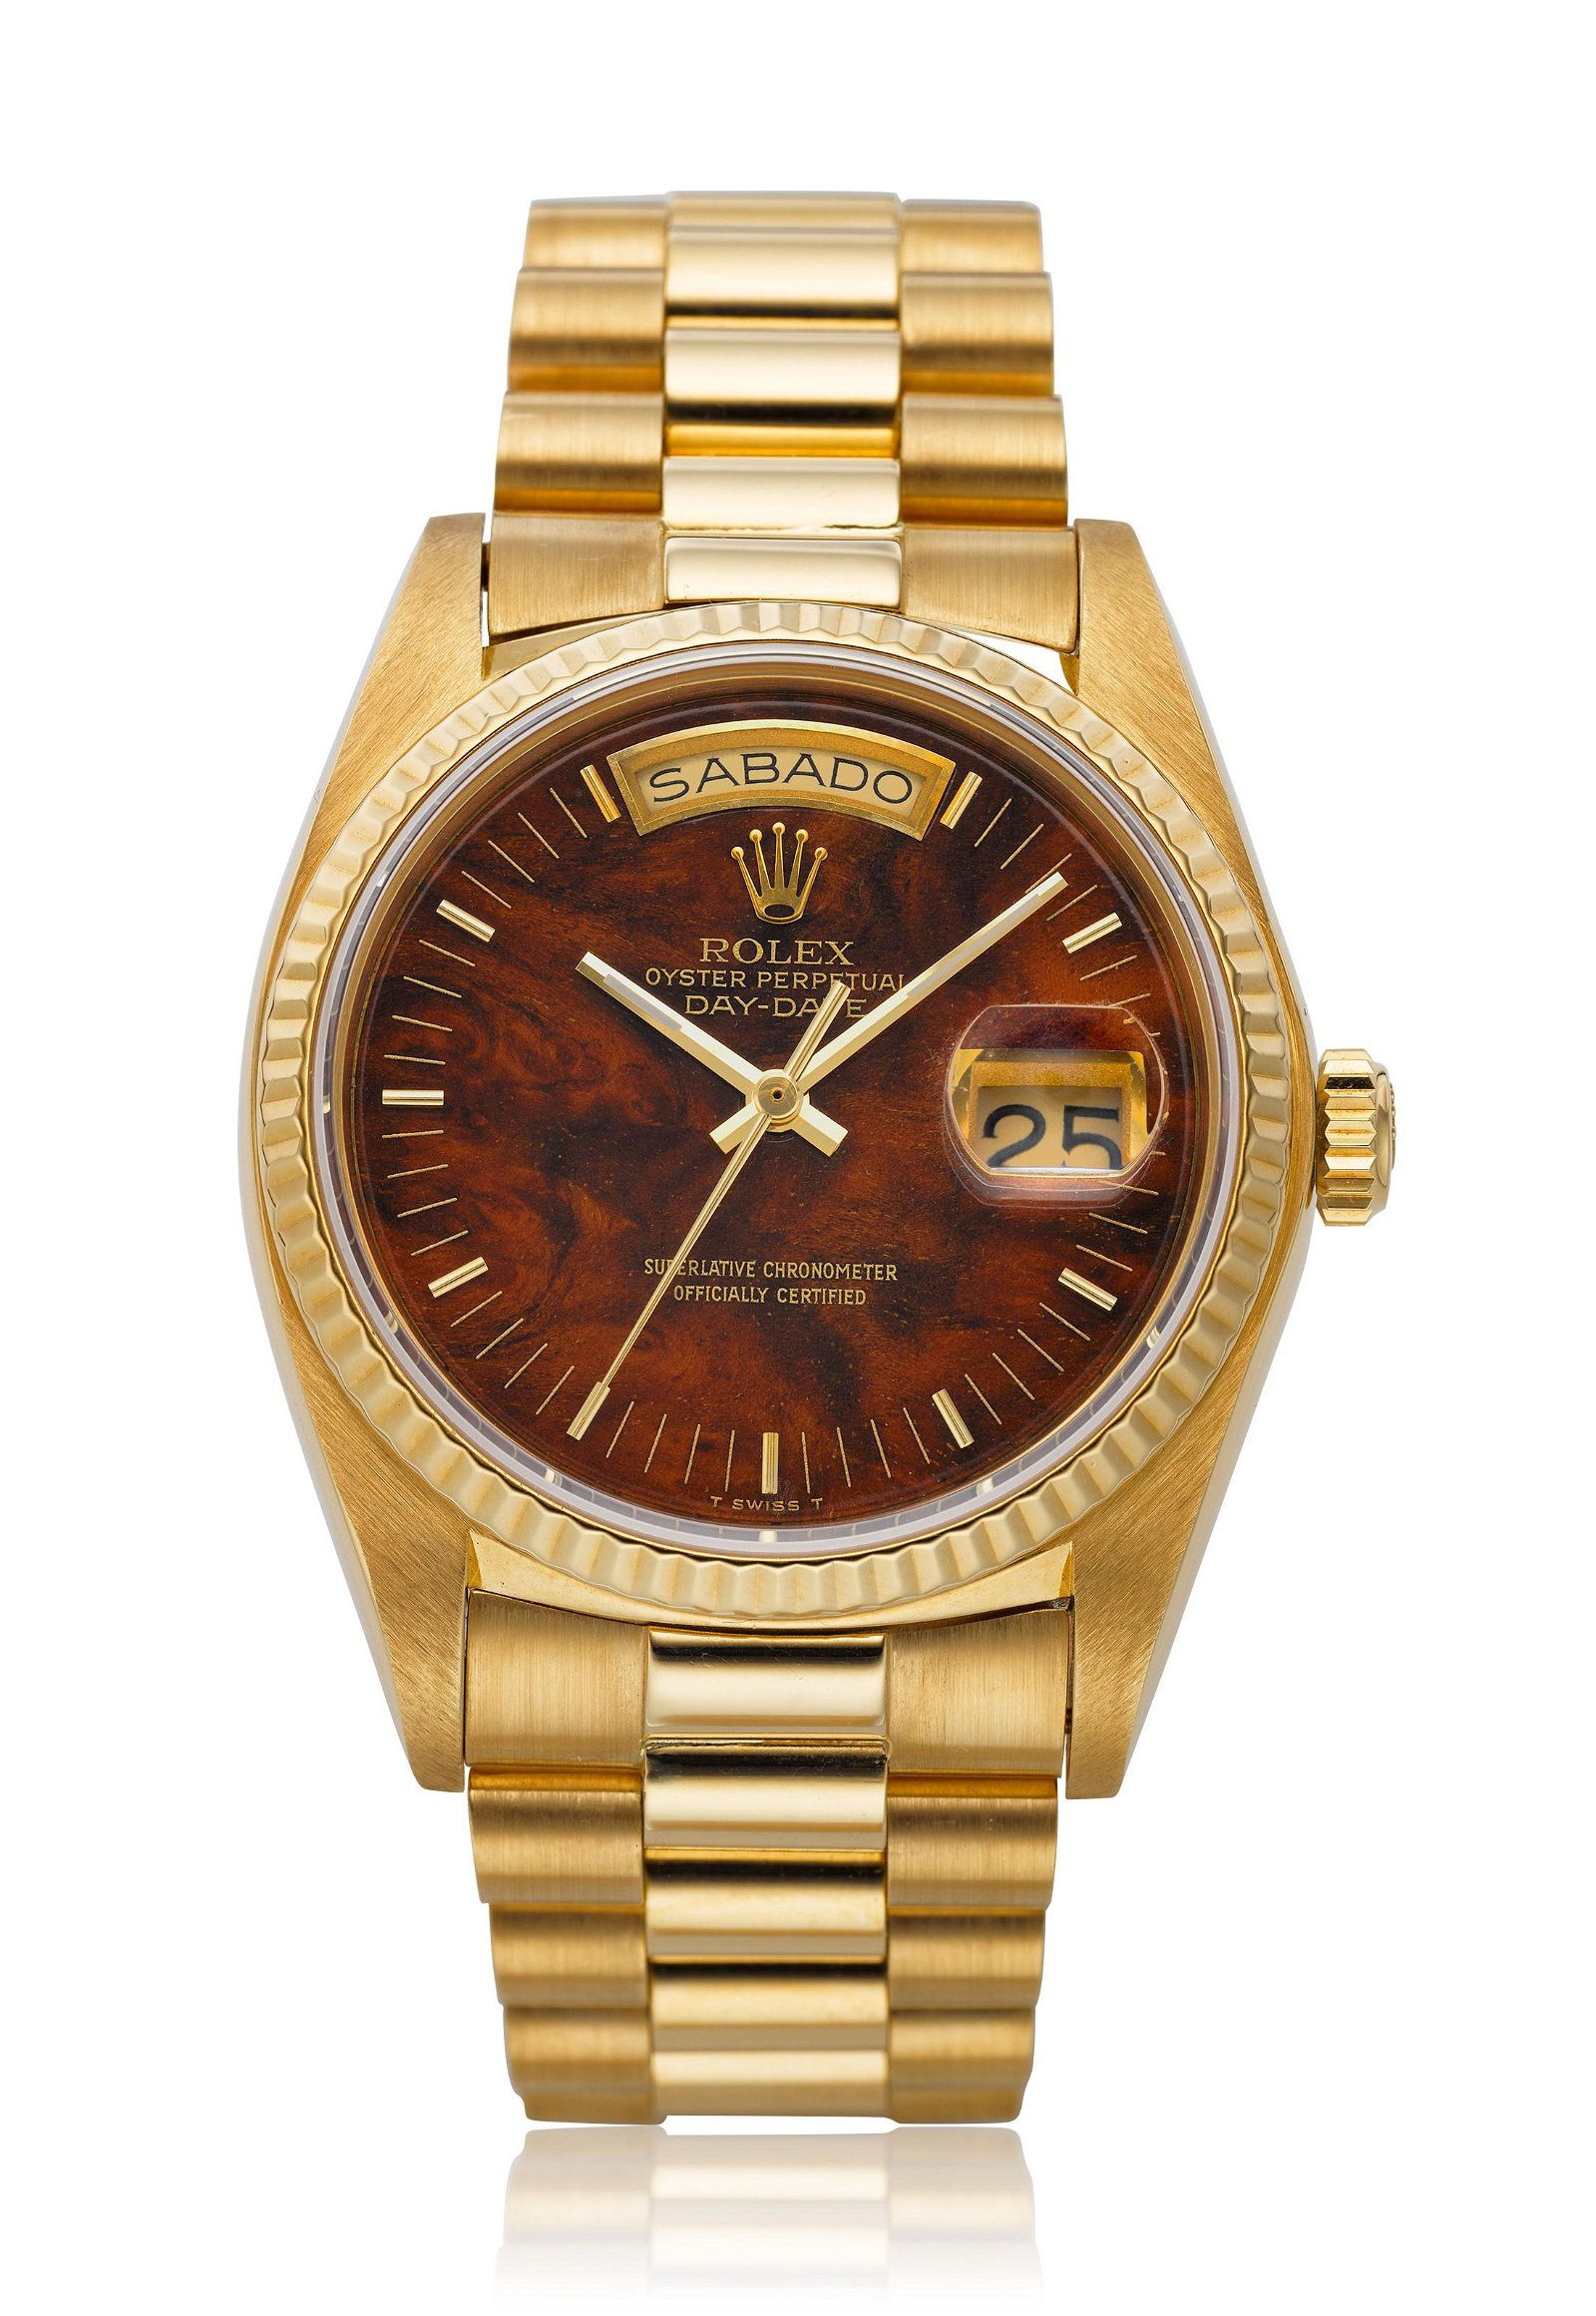 ROLEX, 18K DAY-DATE WITH WOOD DIAL, REF. 18038